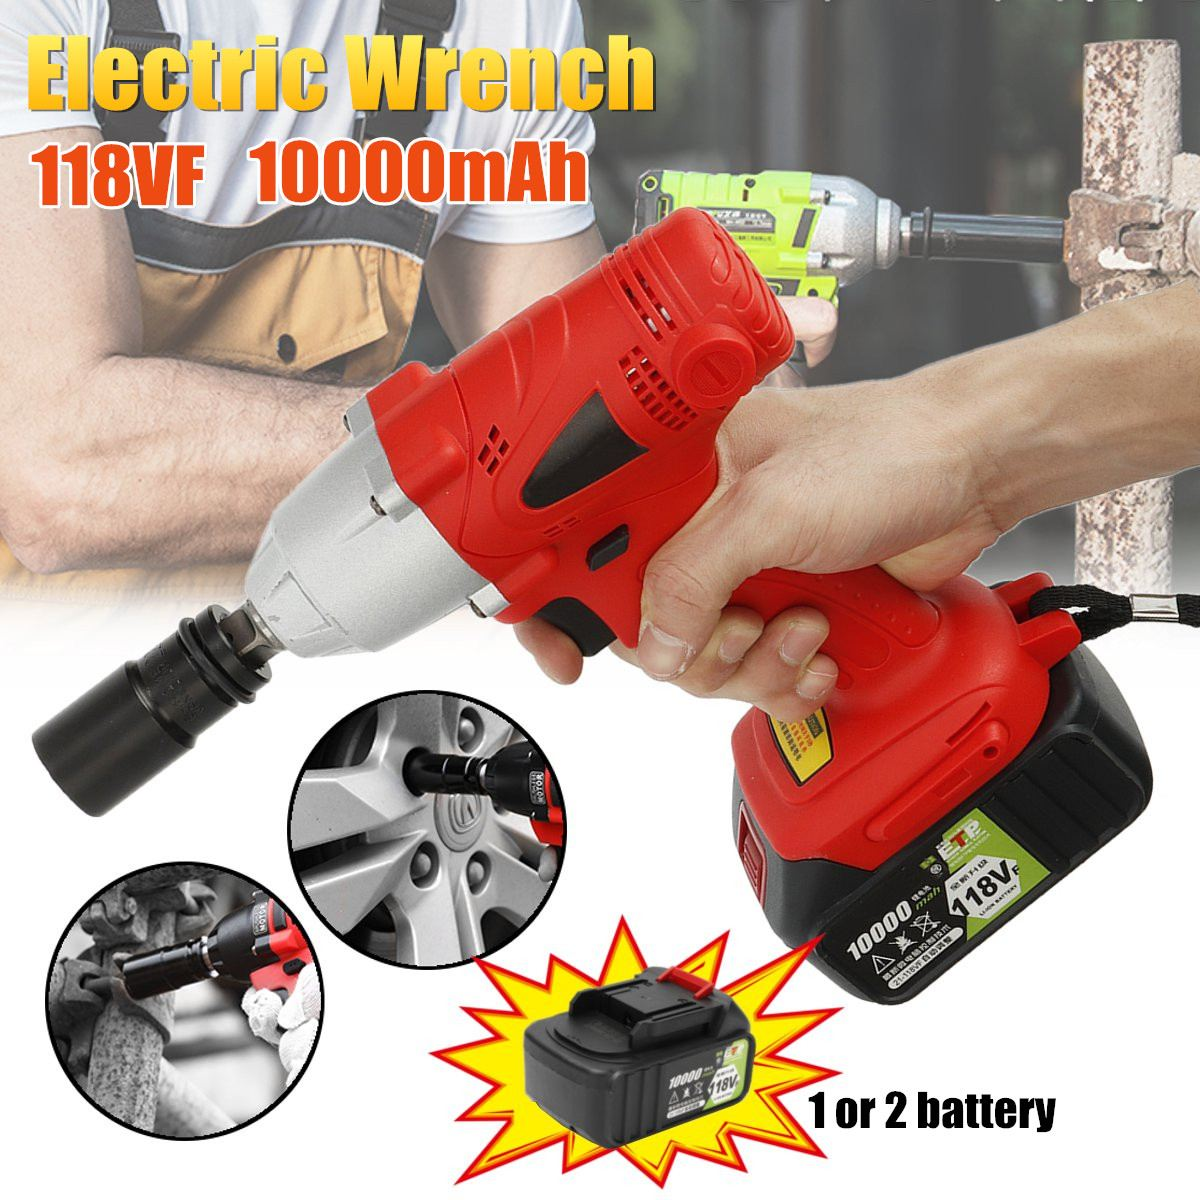 320N.M Max Torque Electric Impact Wrench 1/2  Cordless Socket Wrench Drill Screwdriver 10000mAh 118VF Battery Installation Tool320N.M Max Torque Electric Impact Wrench 1/2  Cordless Socket Wrench Drill Screwdriver 10000mAh 118VF Battery Installation Tool